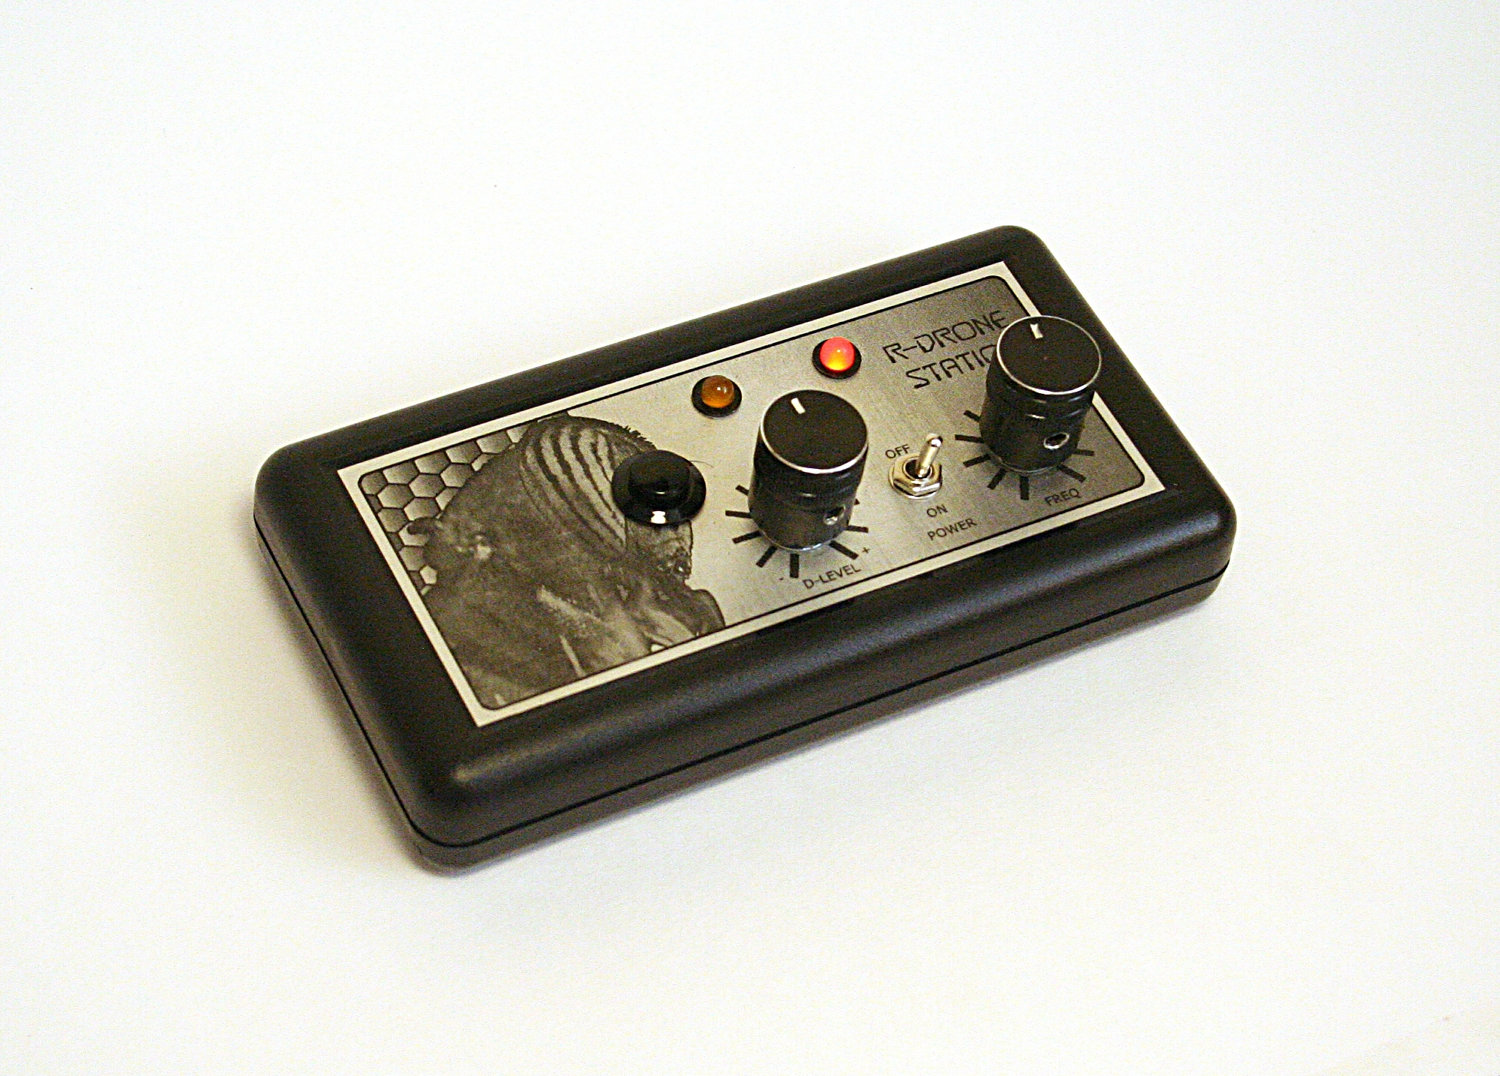 R-Drone Station Handmade Drone Synth Ask a question €116,-